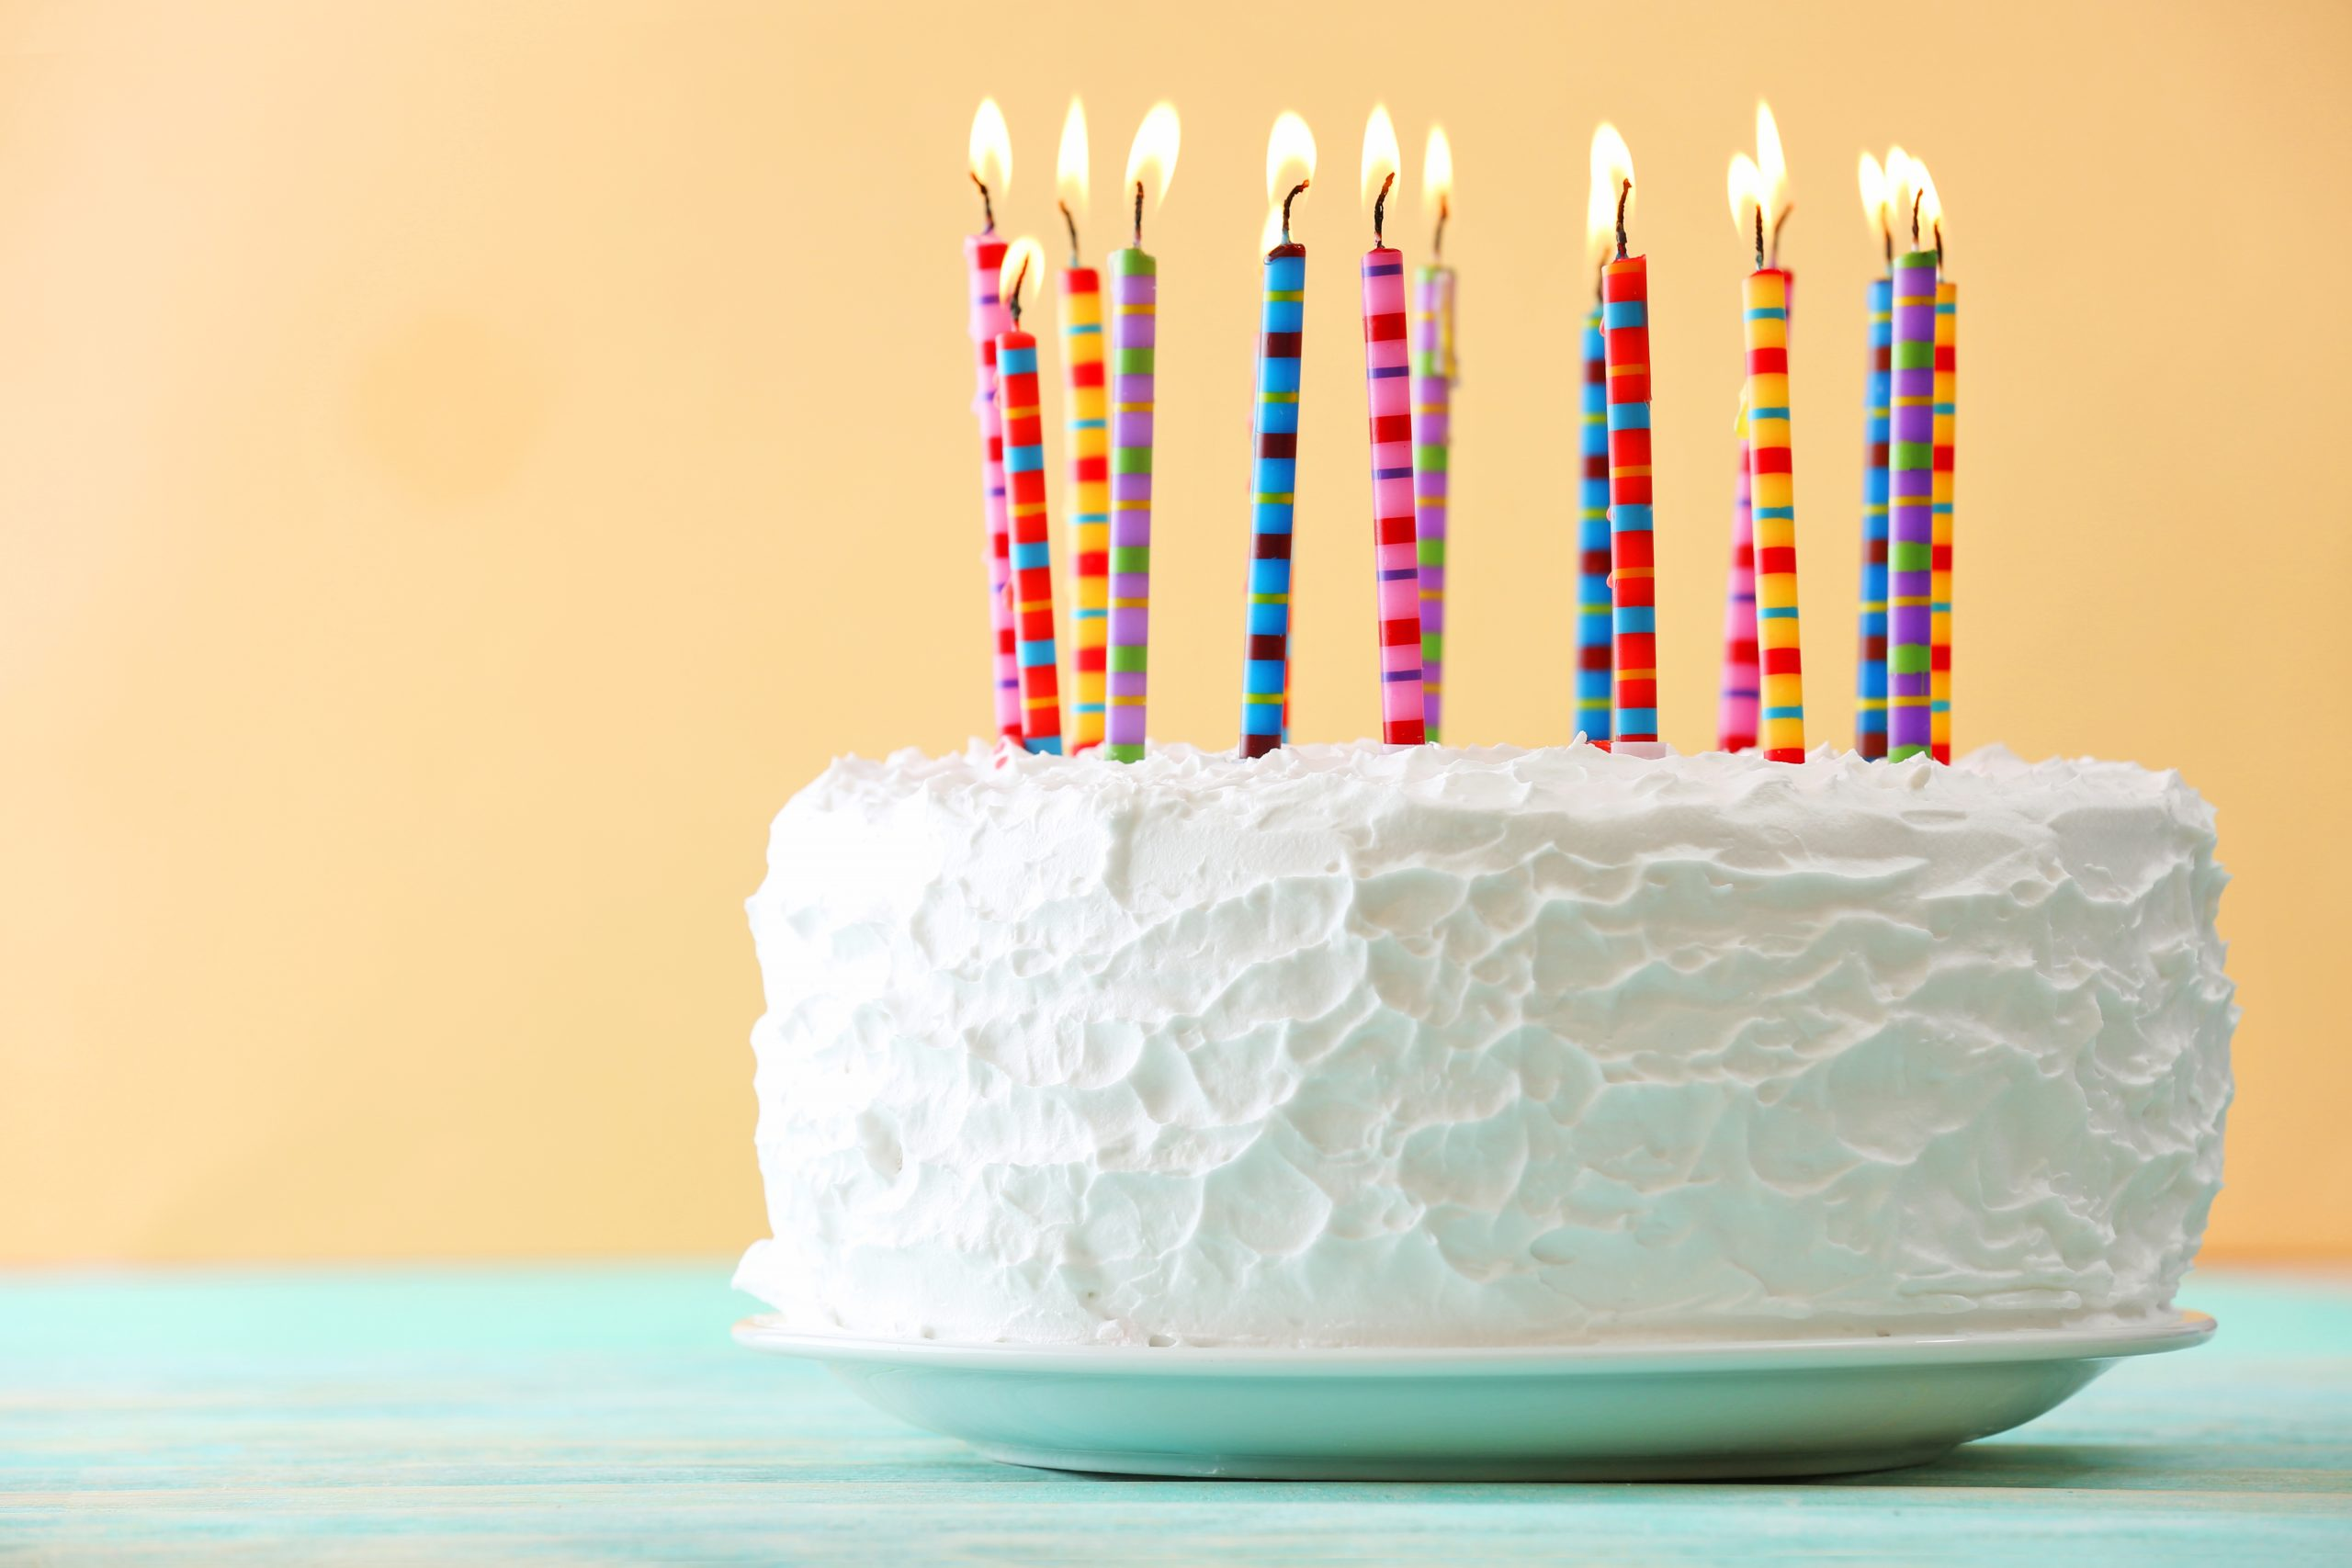 Birthday cake with candles on color background freebies